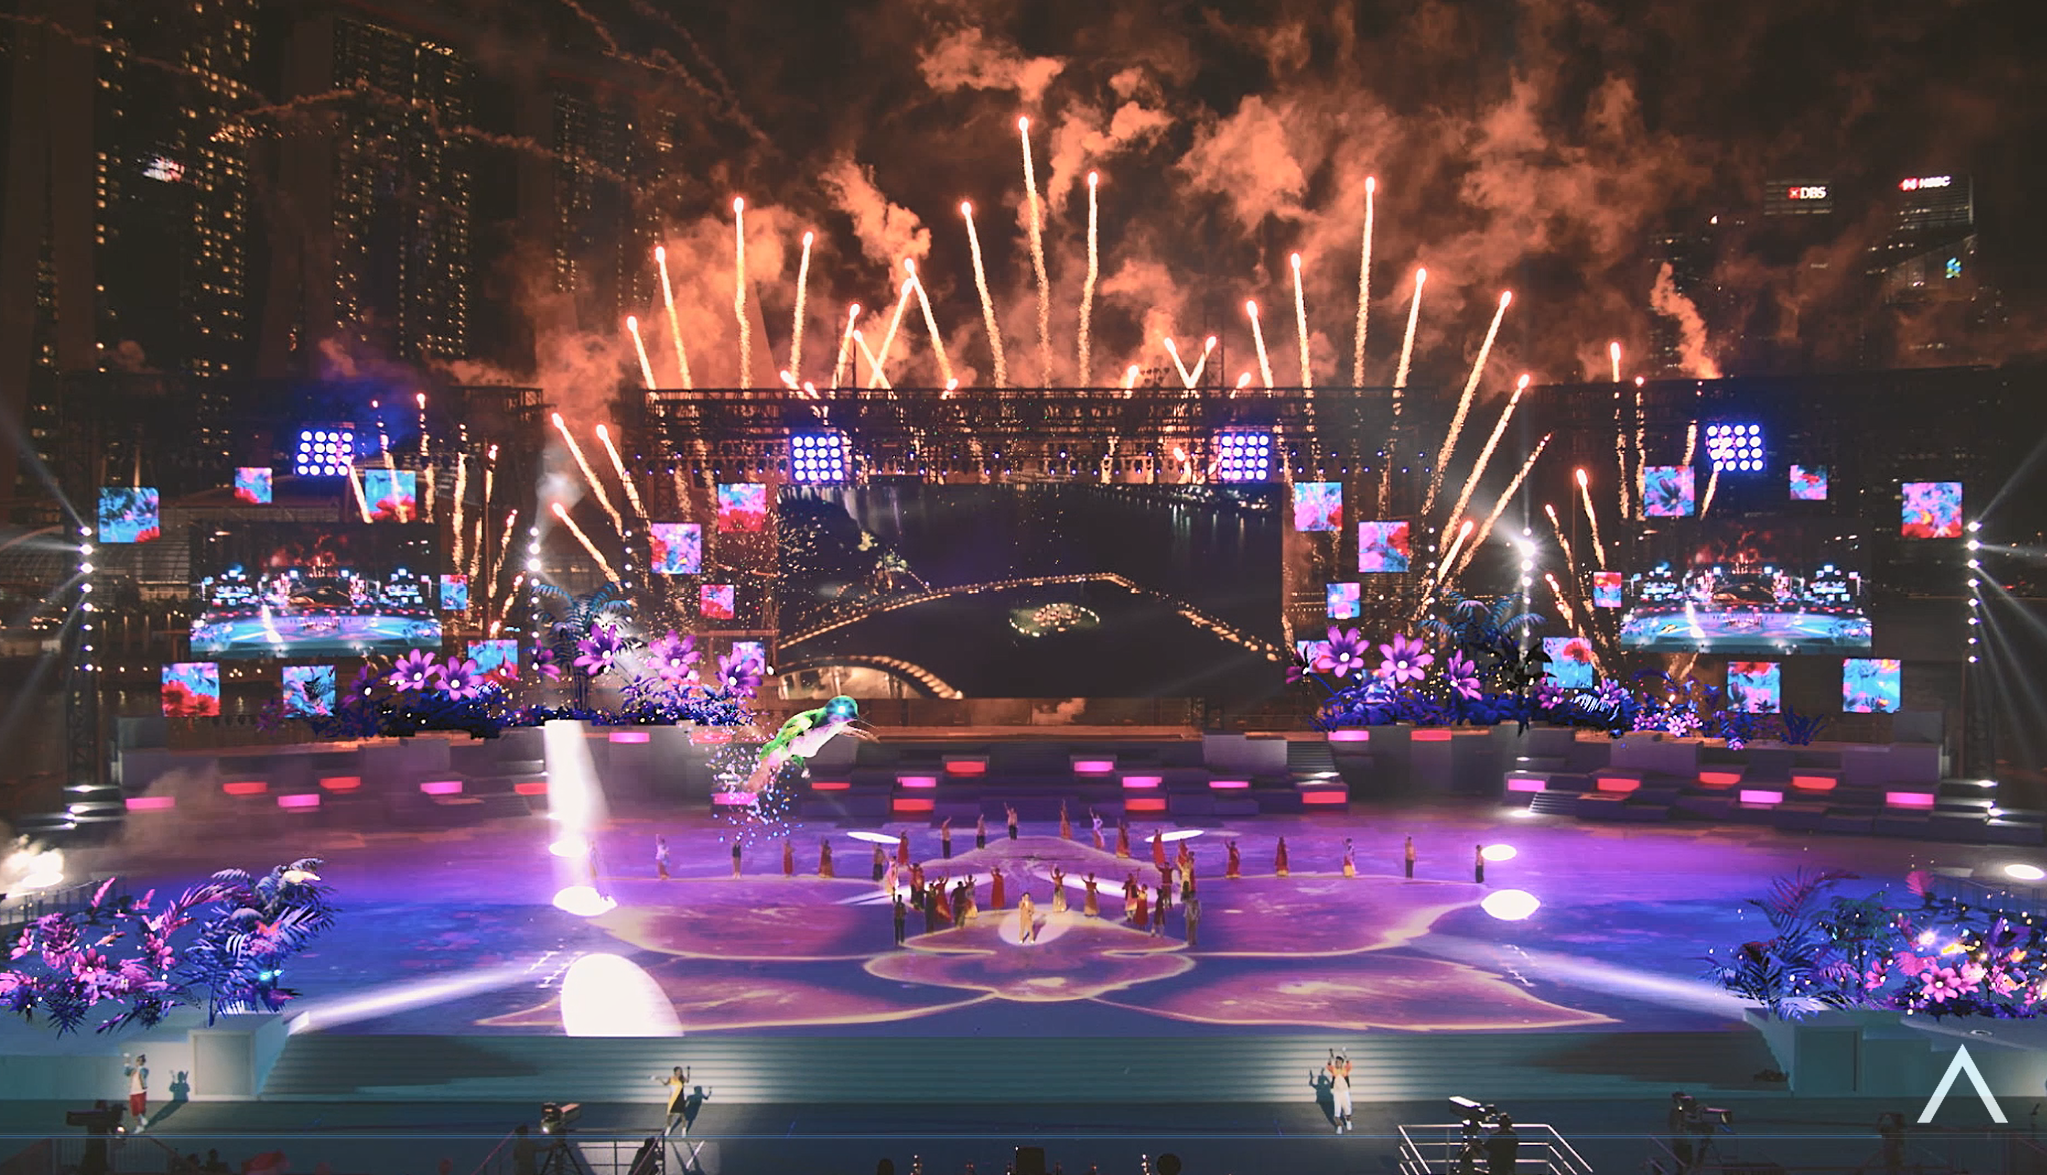 Pixotope brings AR technology to Singapore National Day Parade